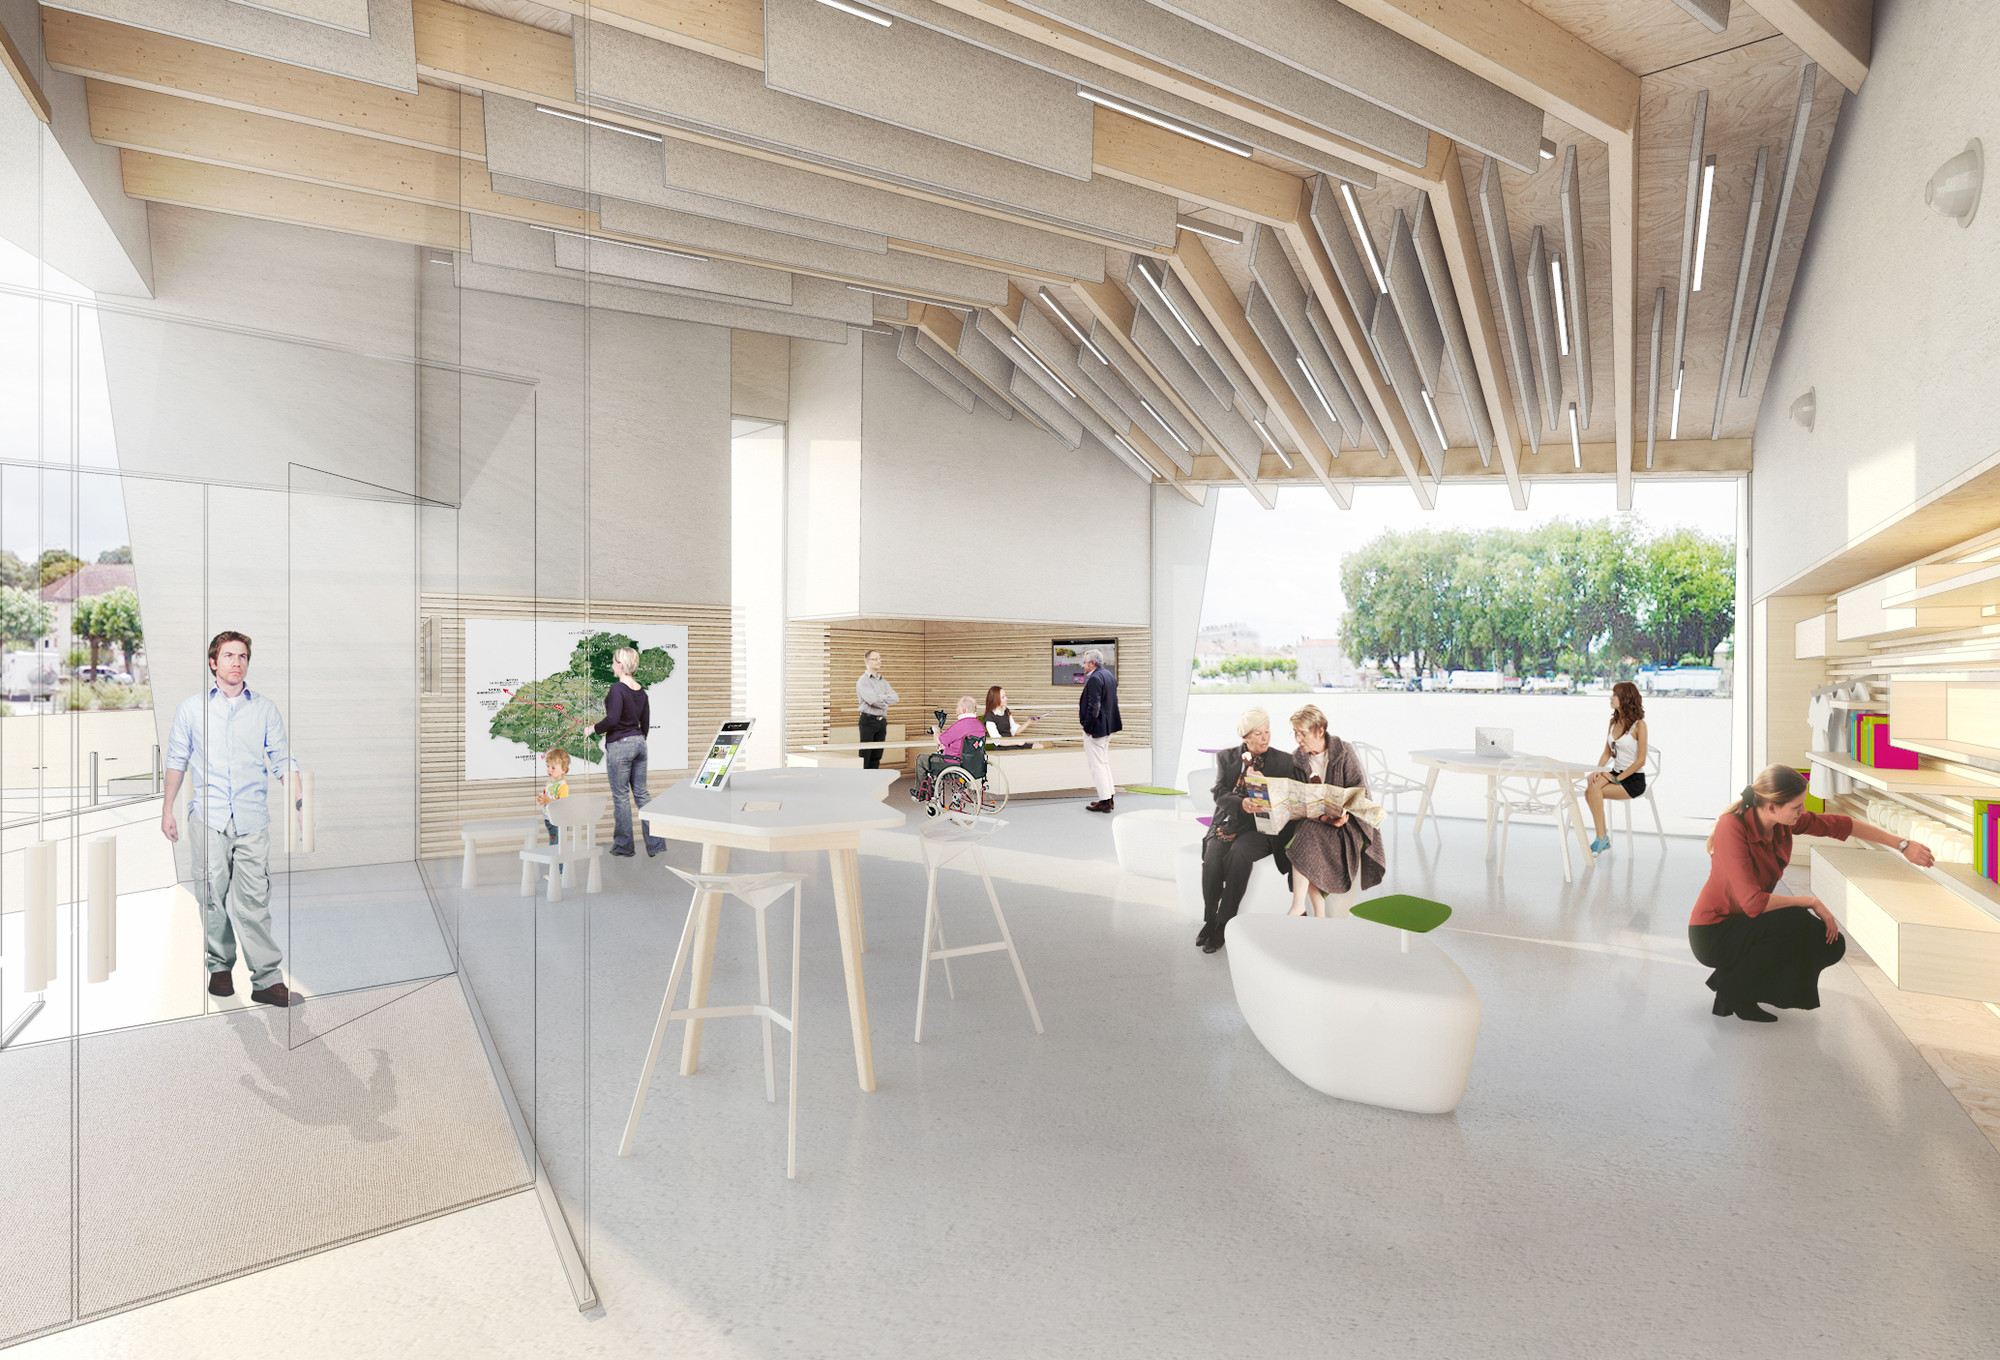 office for design and architecture. Thibaudeau Architecte \u0026 Agence D\u0027Architecture Guiraud-Manenc Design Sculptural Tourism Office In France For And Architecture